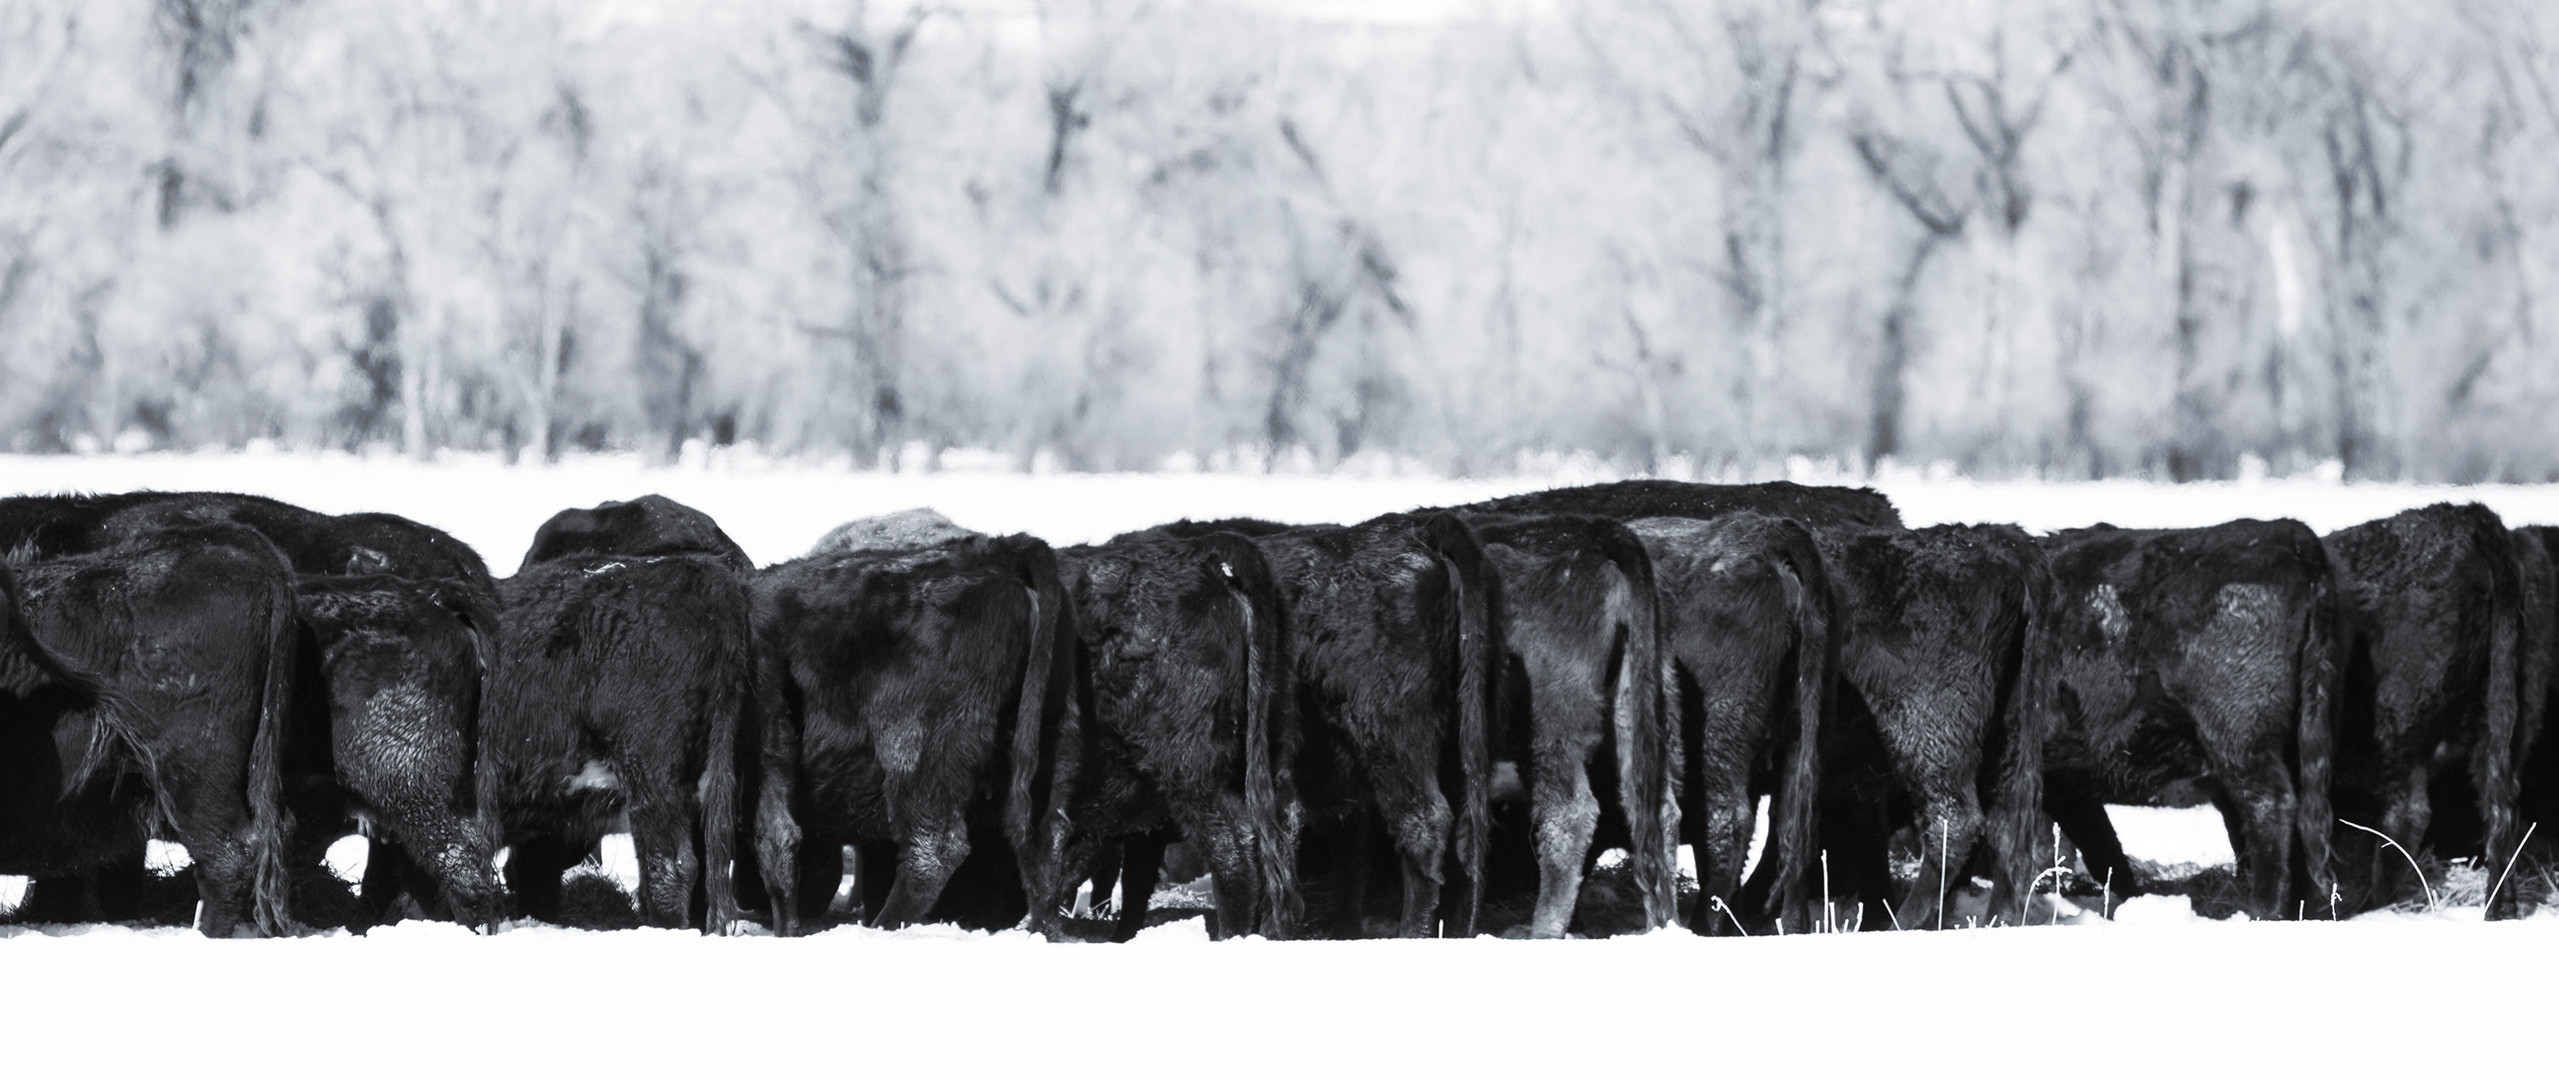 h-lazy-p-cattle-black-cows-winter-feedin